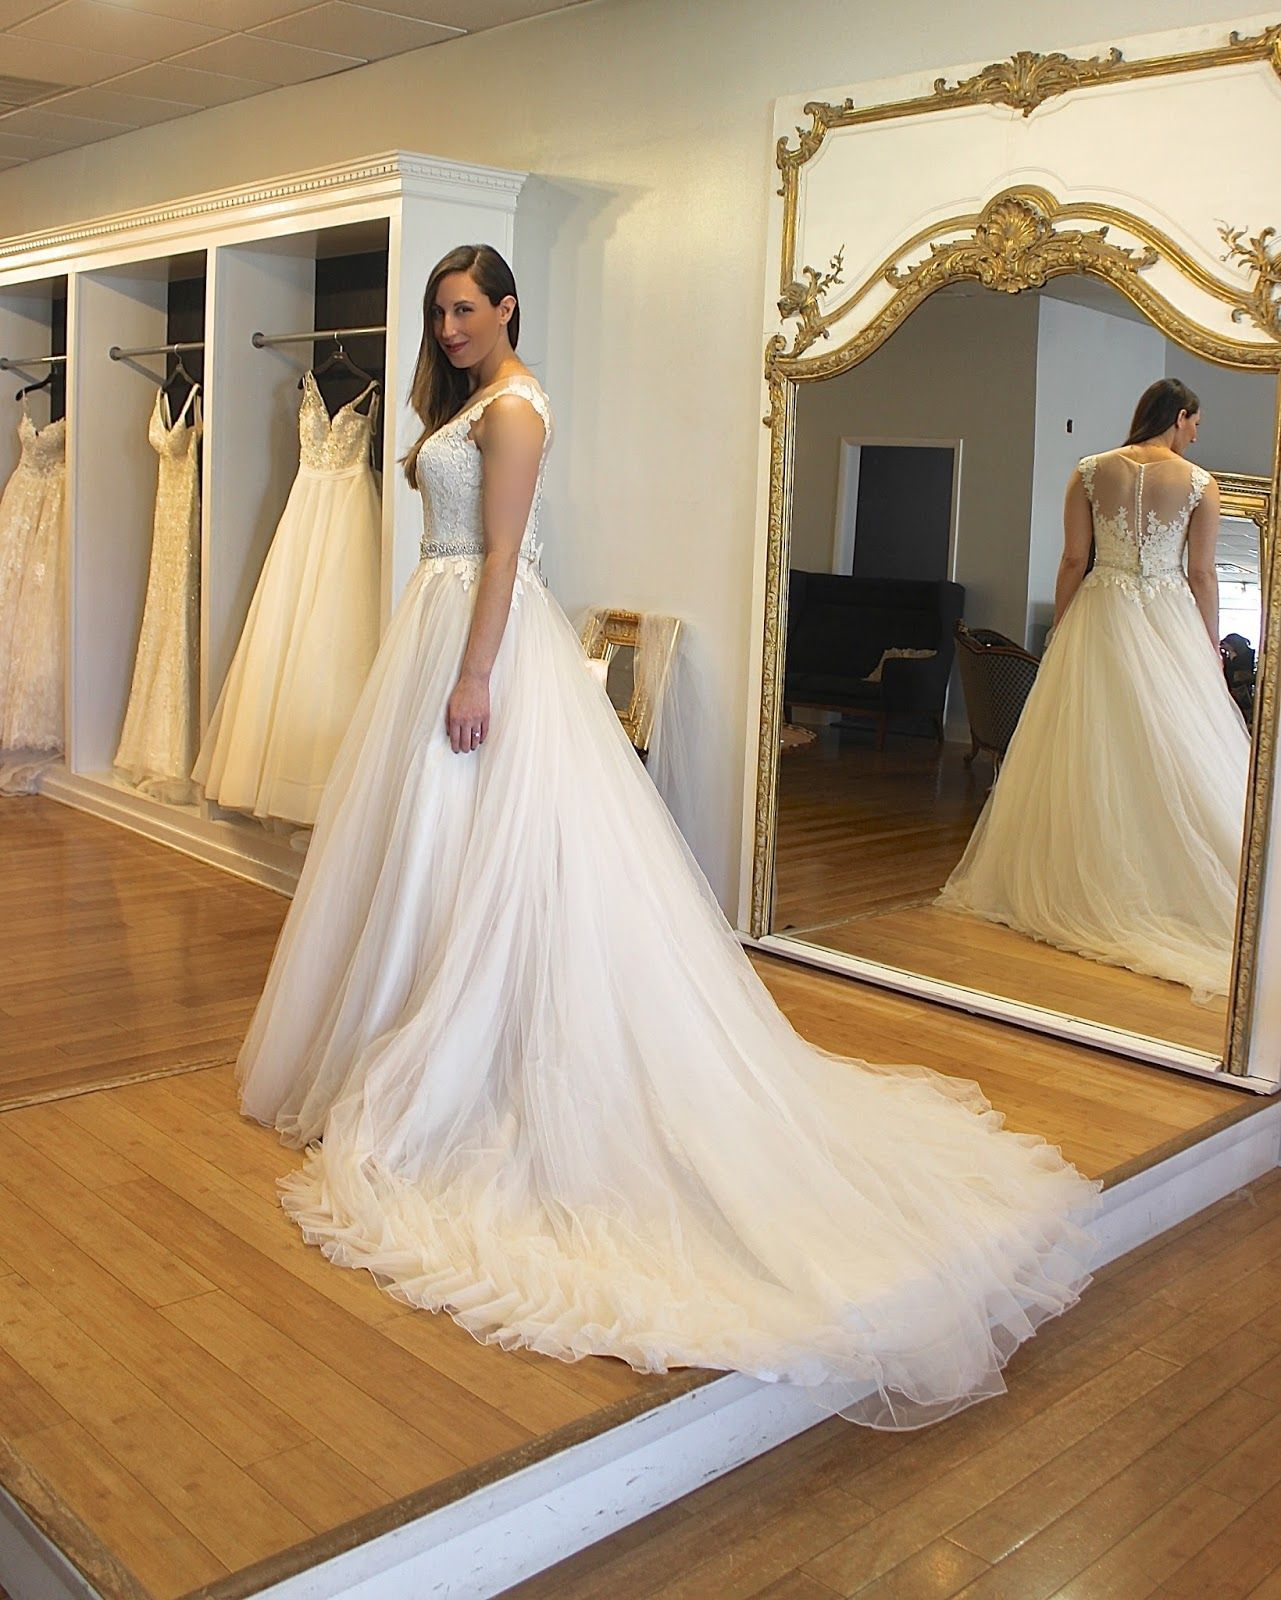 Wedding Gown Shopping with I Do I Do | Wedding Gown Shopping ...